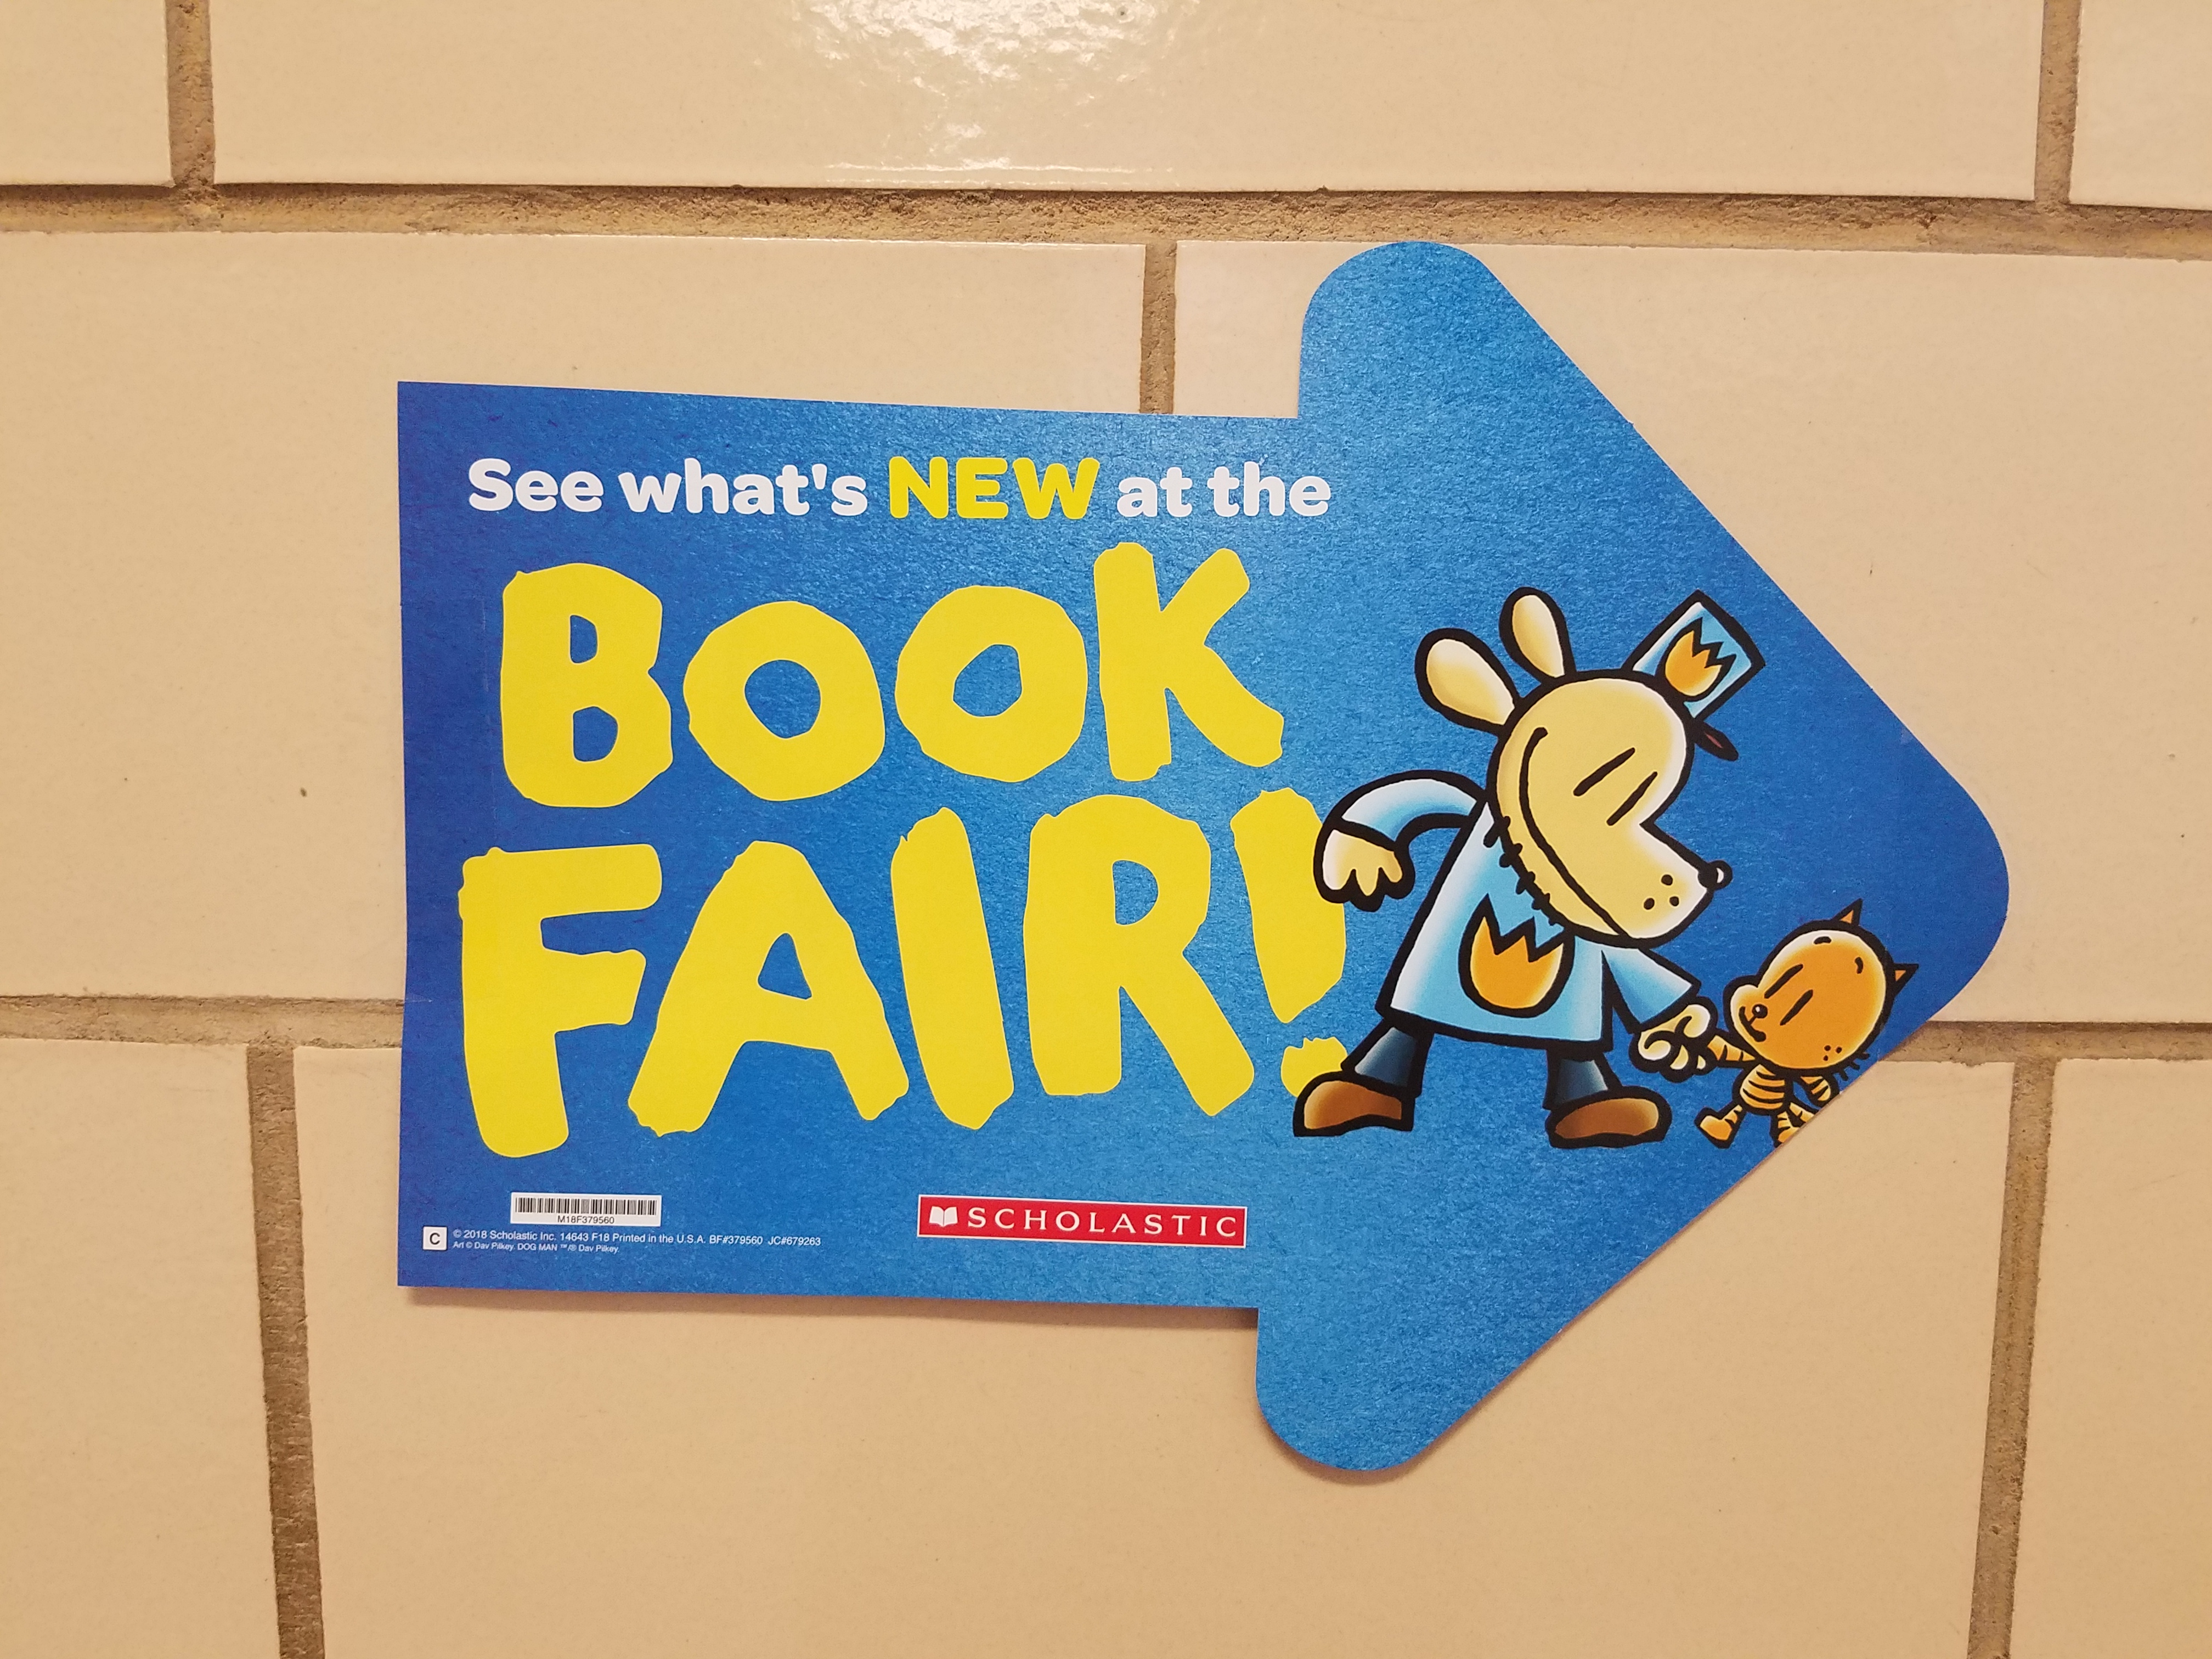 Book Fair will be the week of April 22, from 9:15 am to 3:00 pm daily.